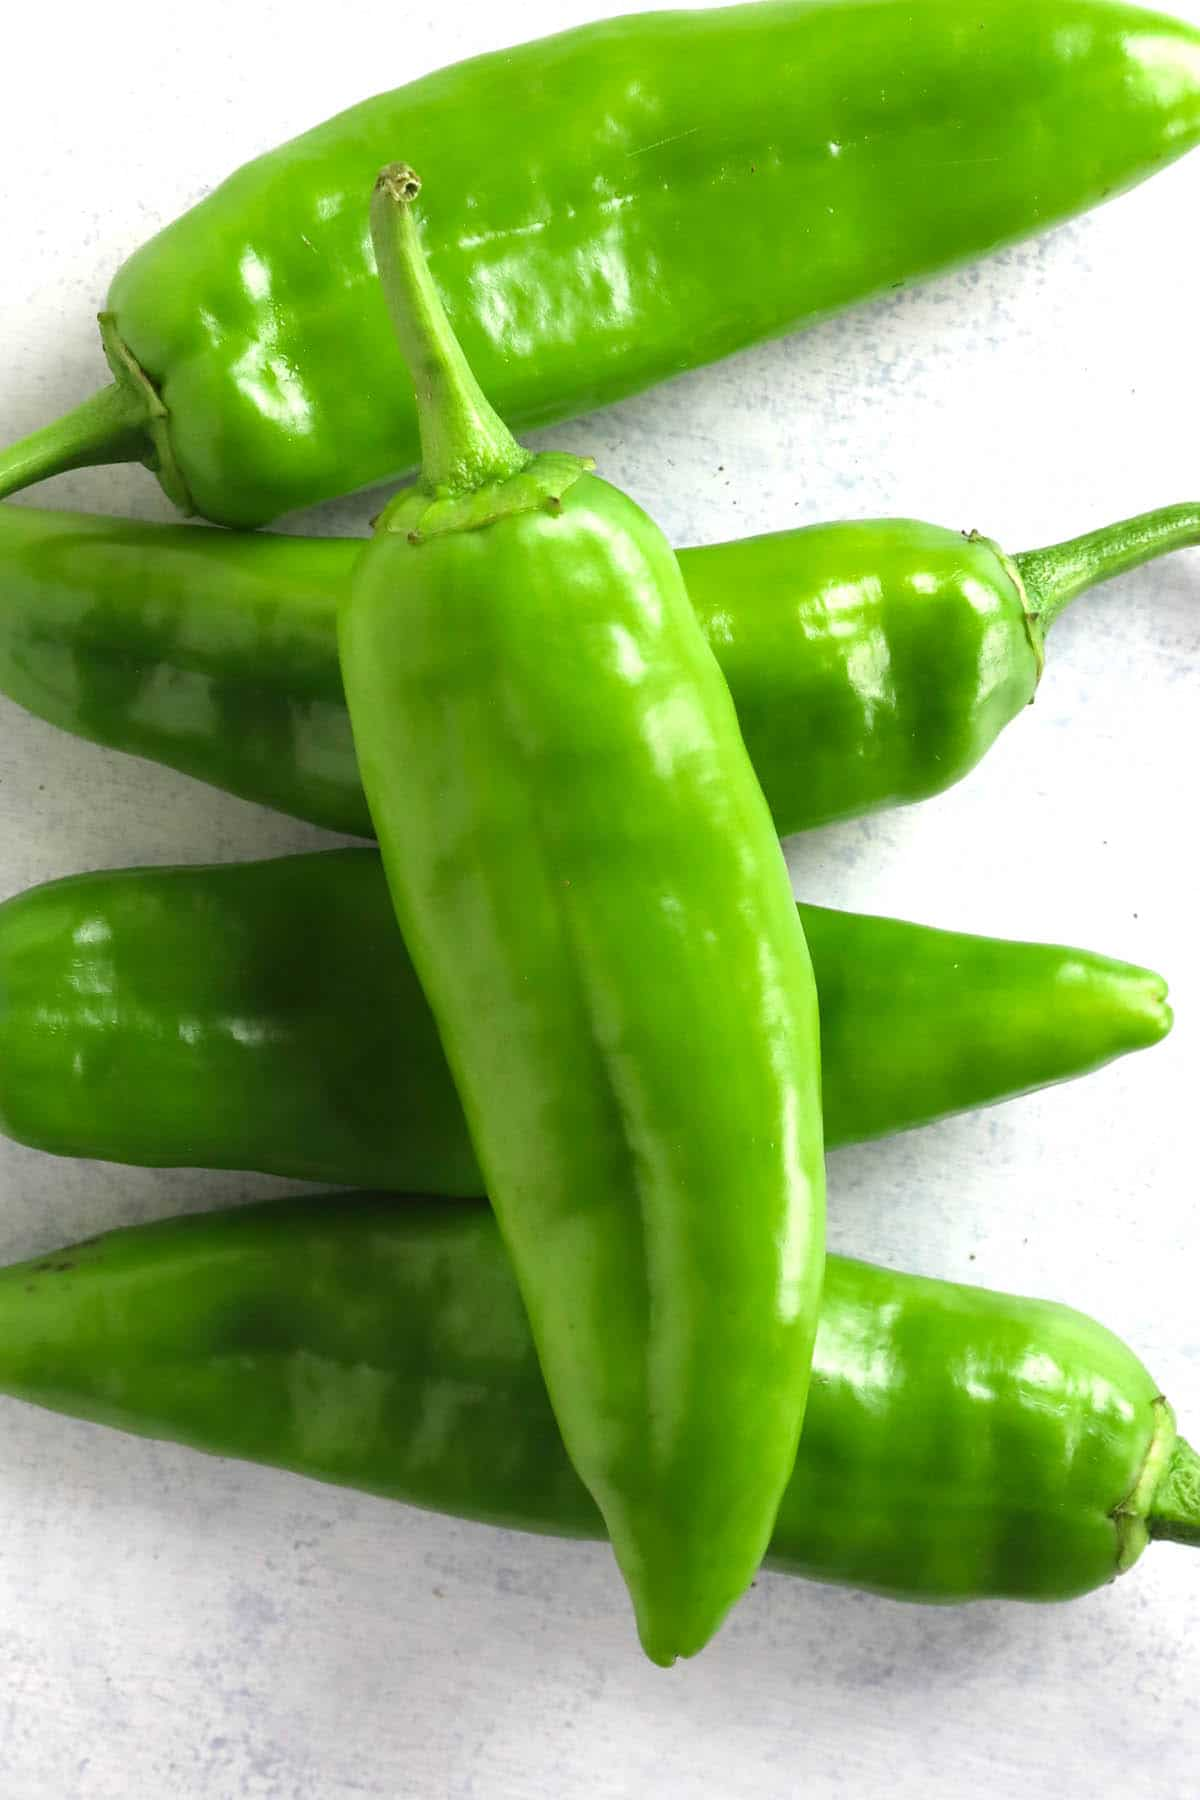 New Mex Big Jim Chili Peppers